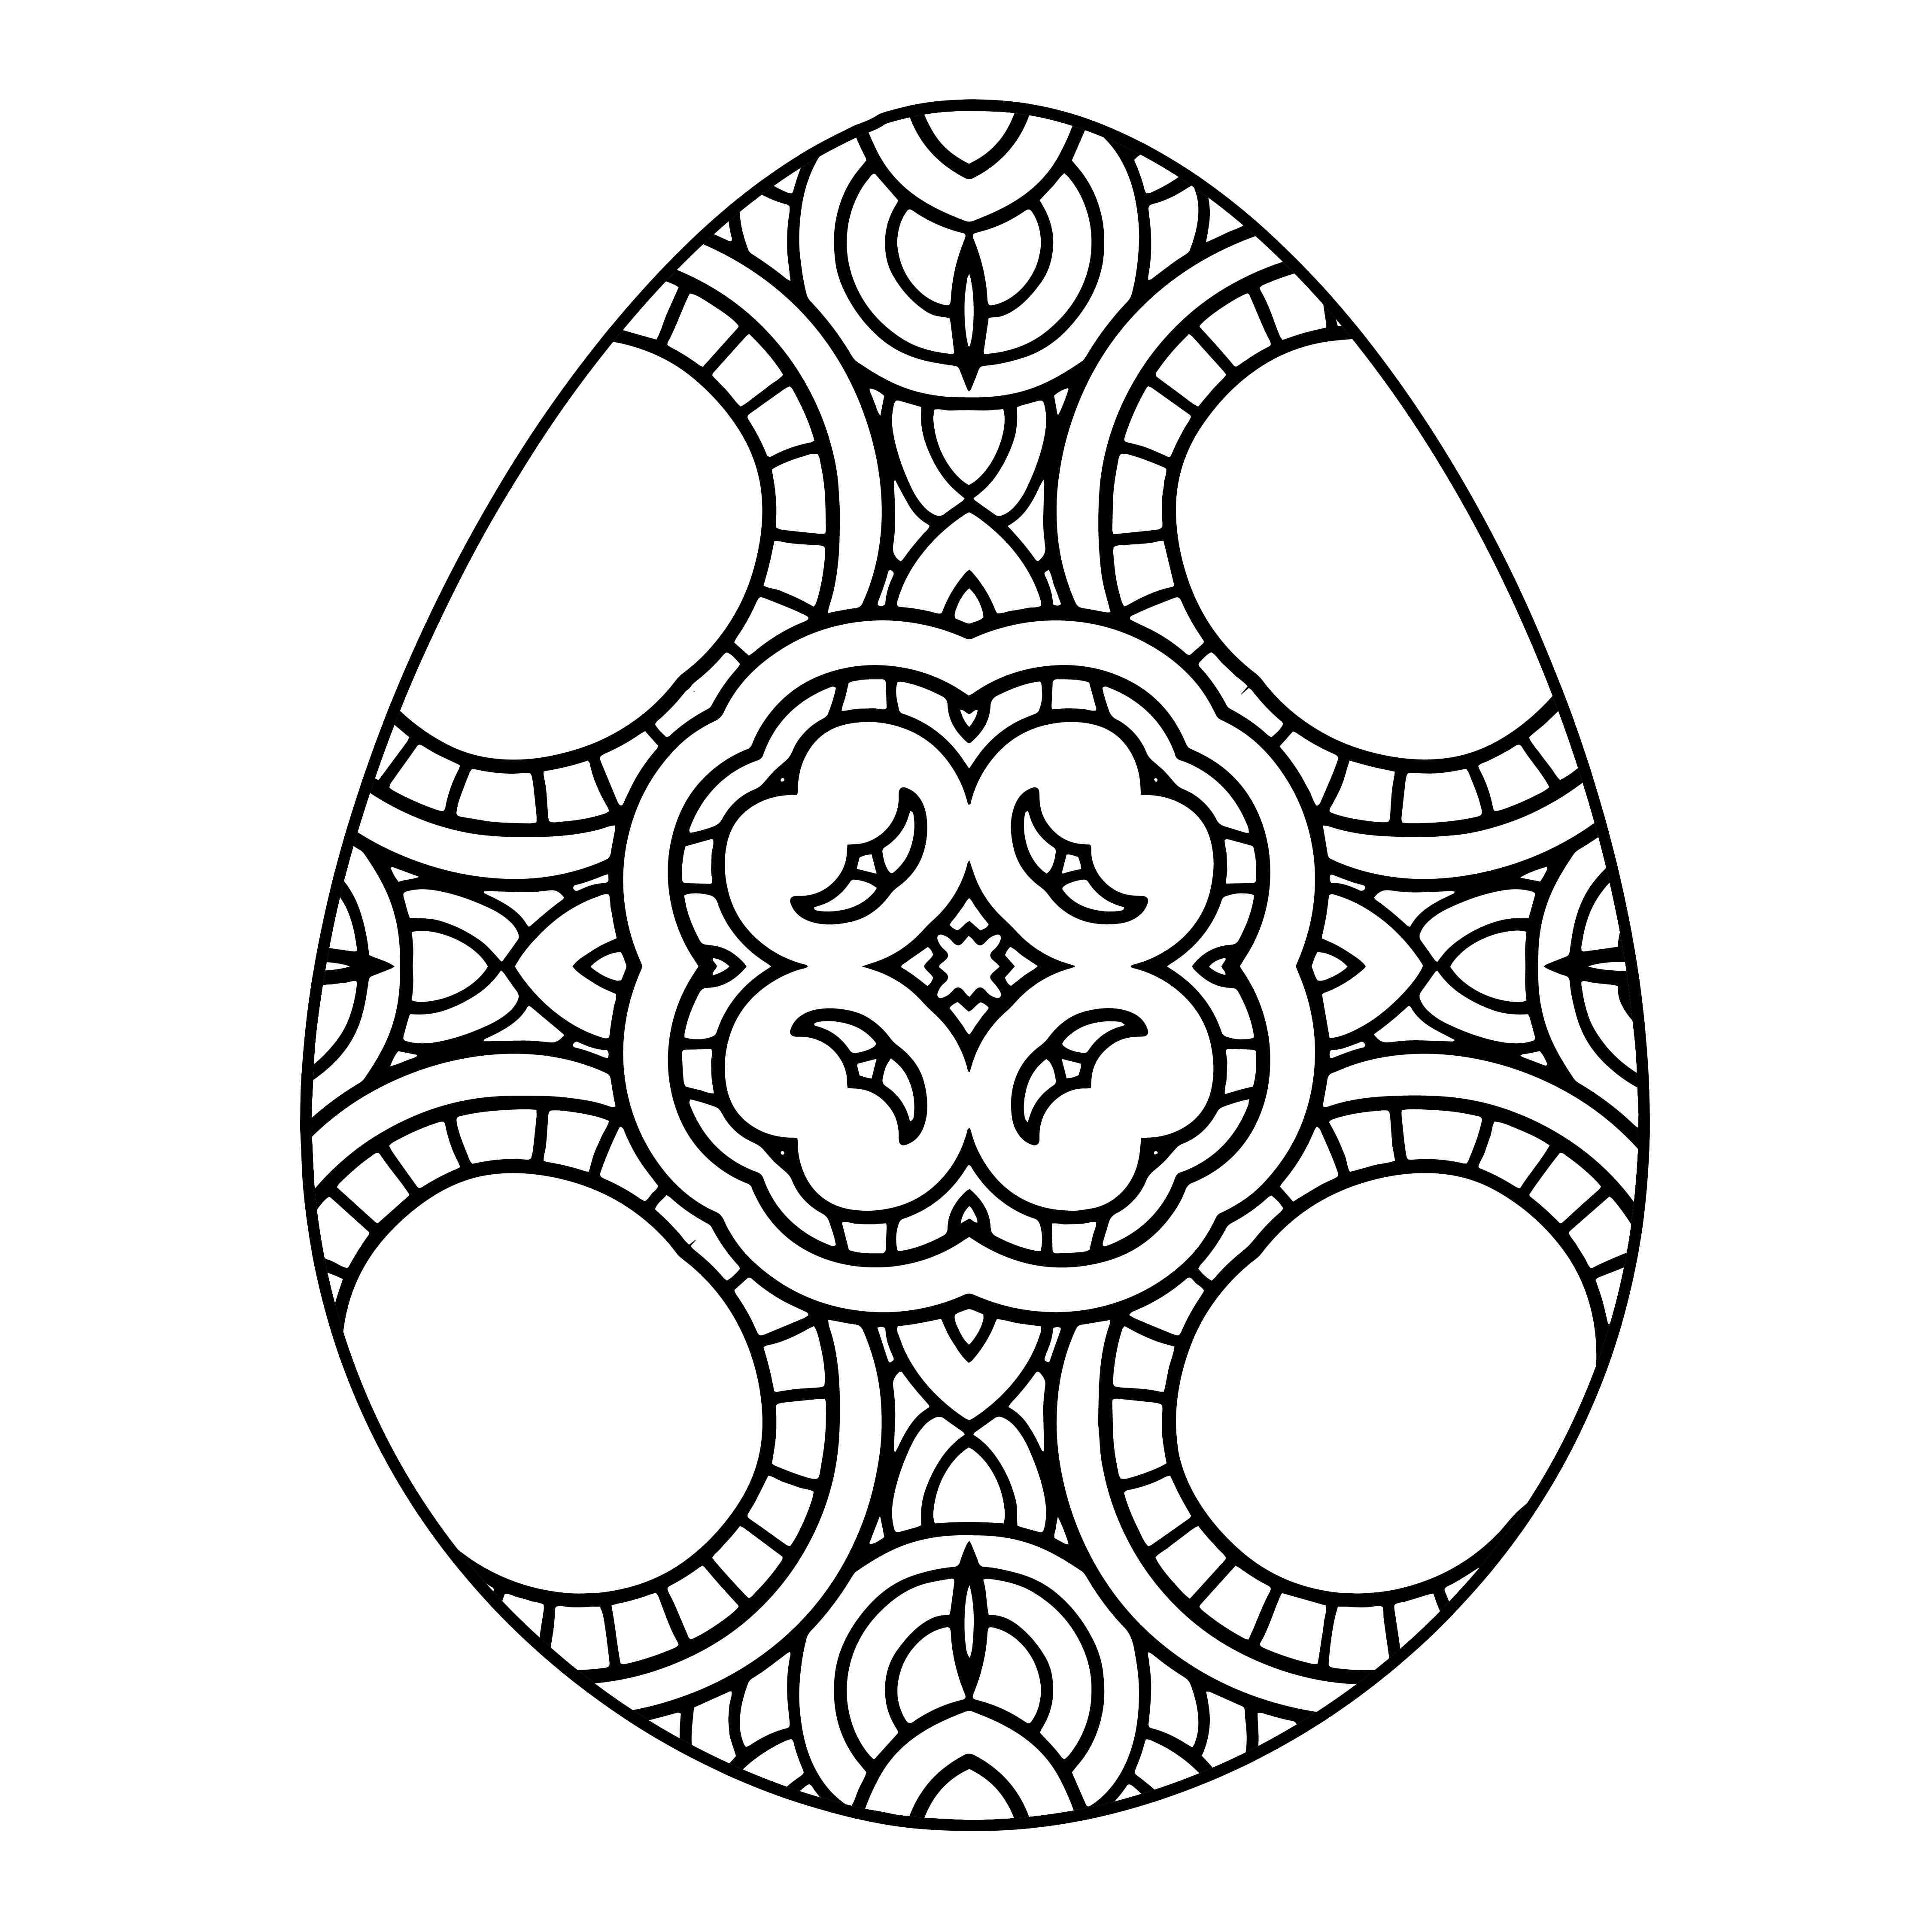 Easter Egg Adult Coloring Pages to Download and Print